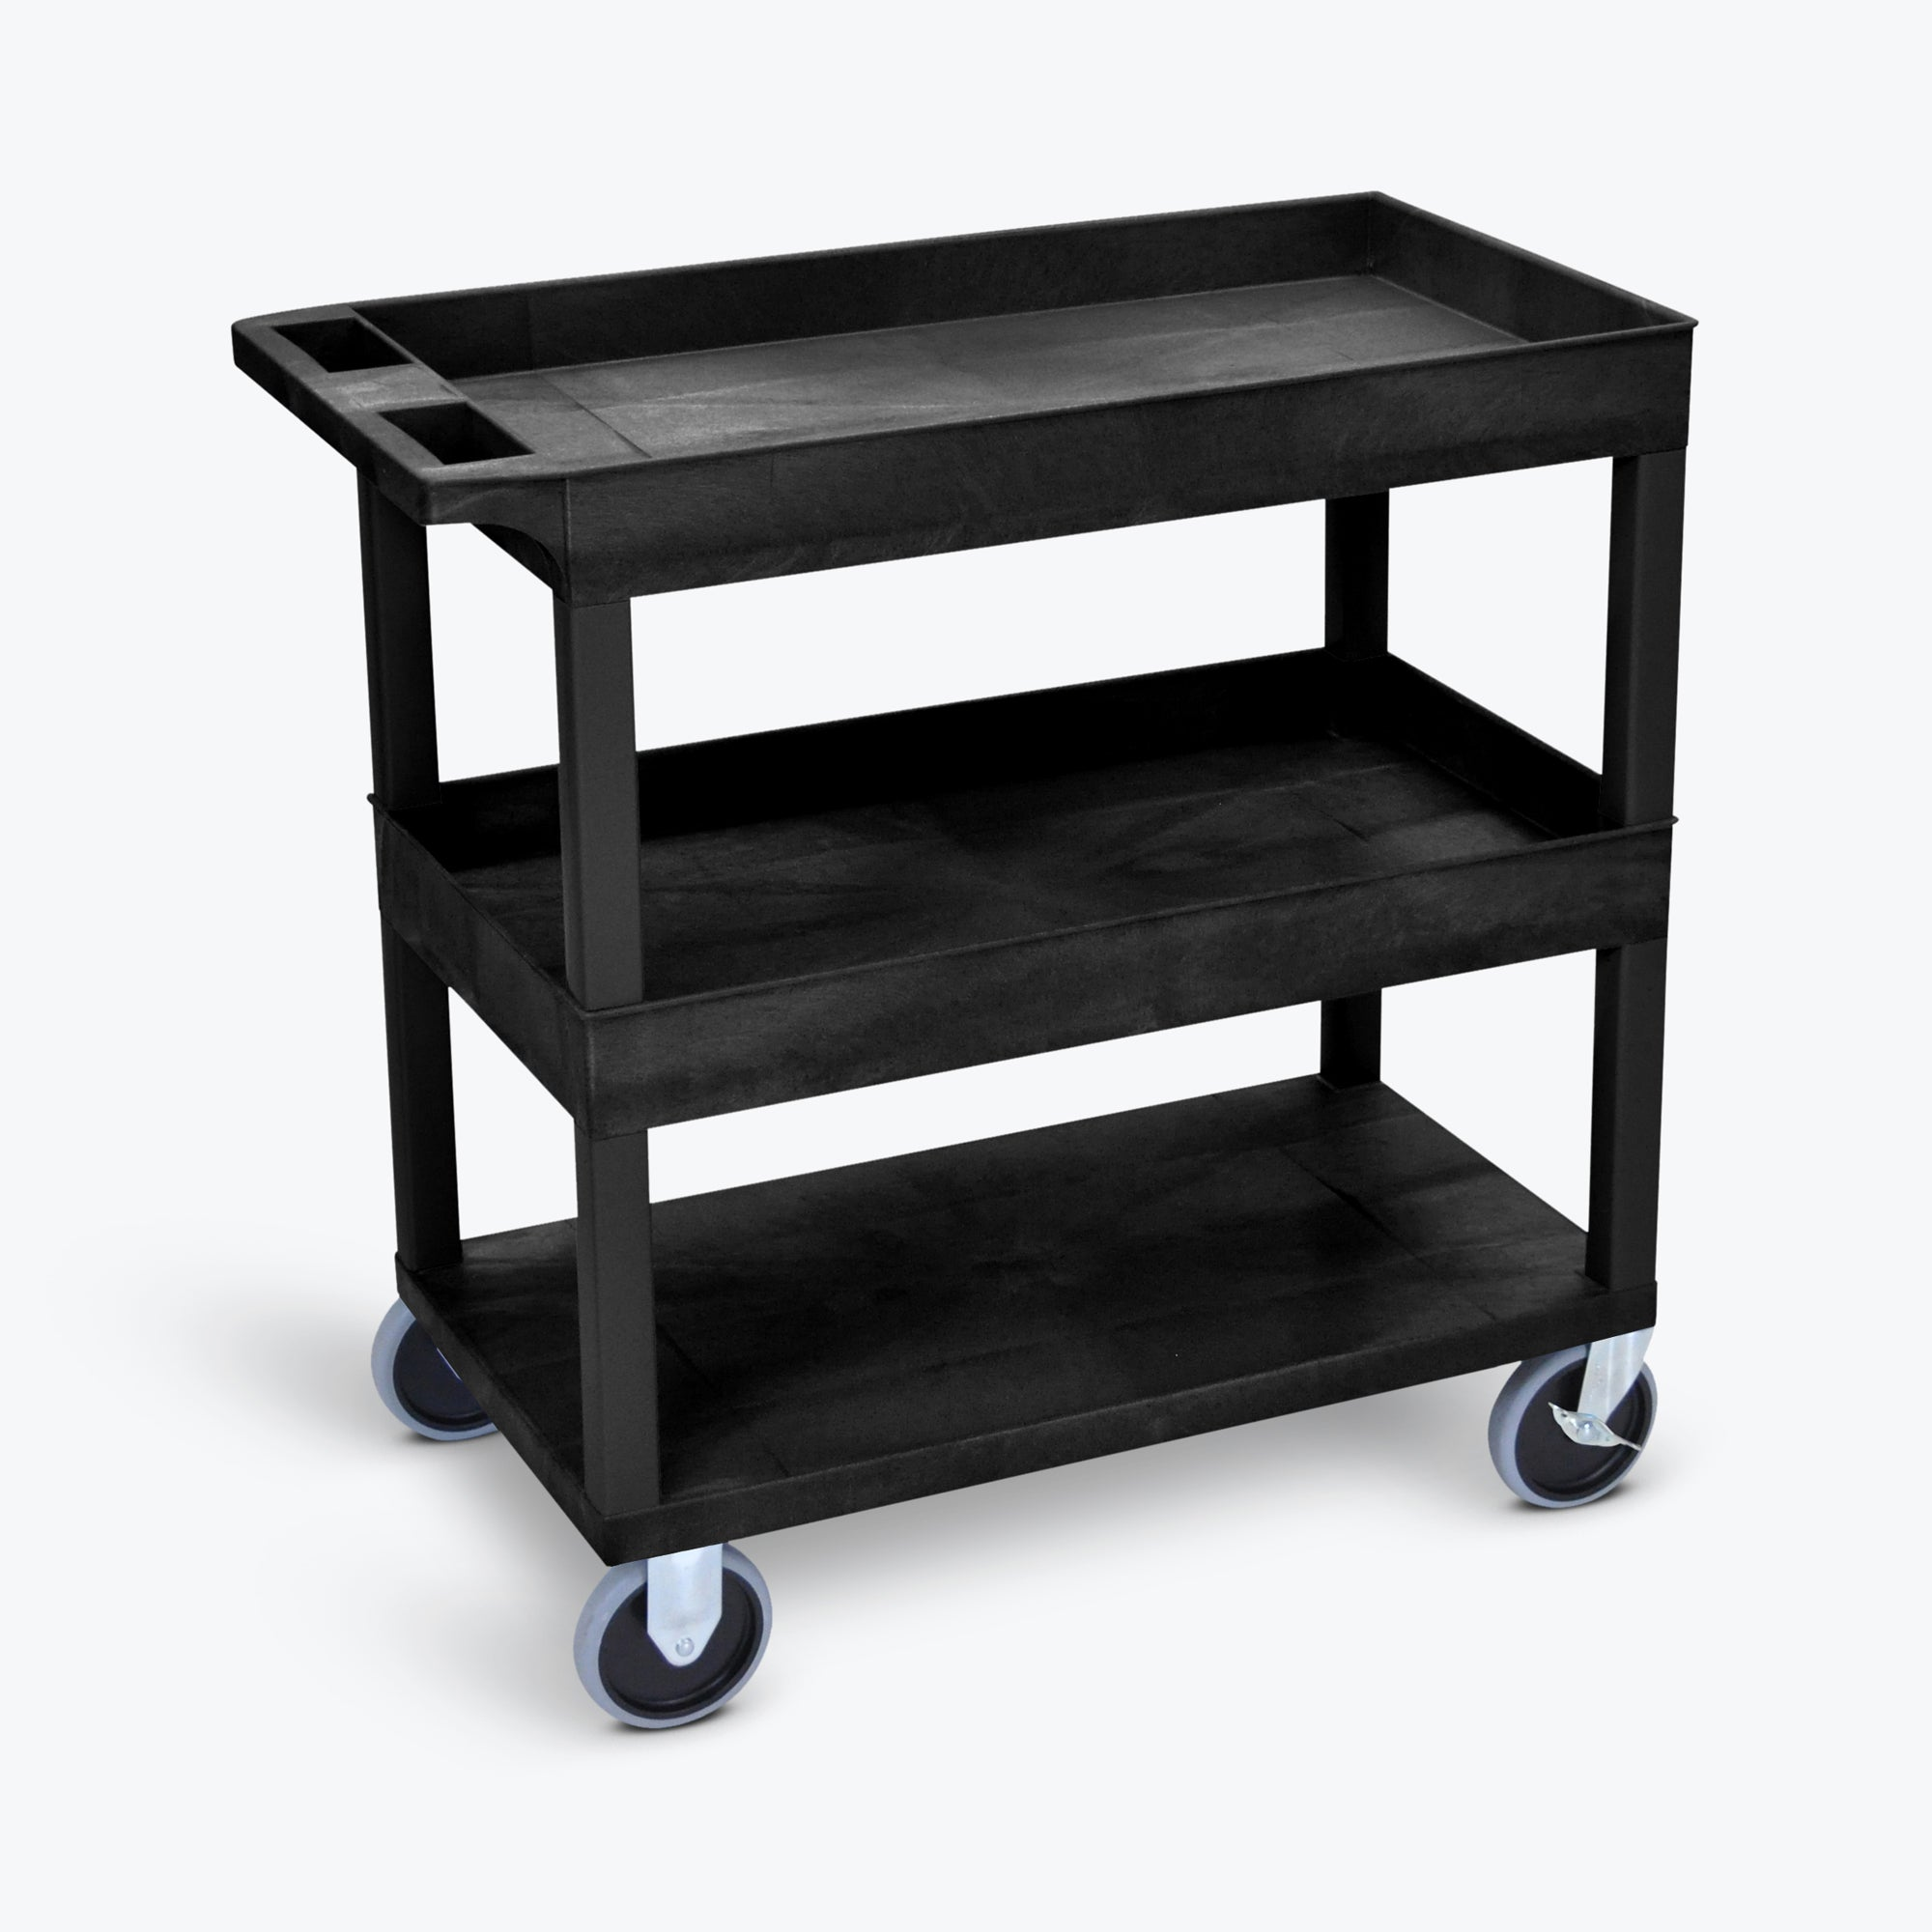 "Luxor 18"" x 32"" 2-Tub/1-Flat Heavy-Duty Shelf Cart w/ 5"" Heavy-Duty Casters 32""W x 18""D x 37.25""H (Black) - EC112HD-B"